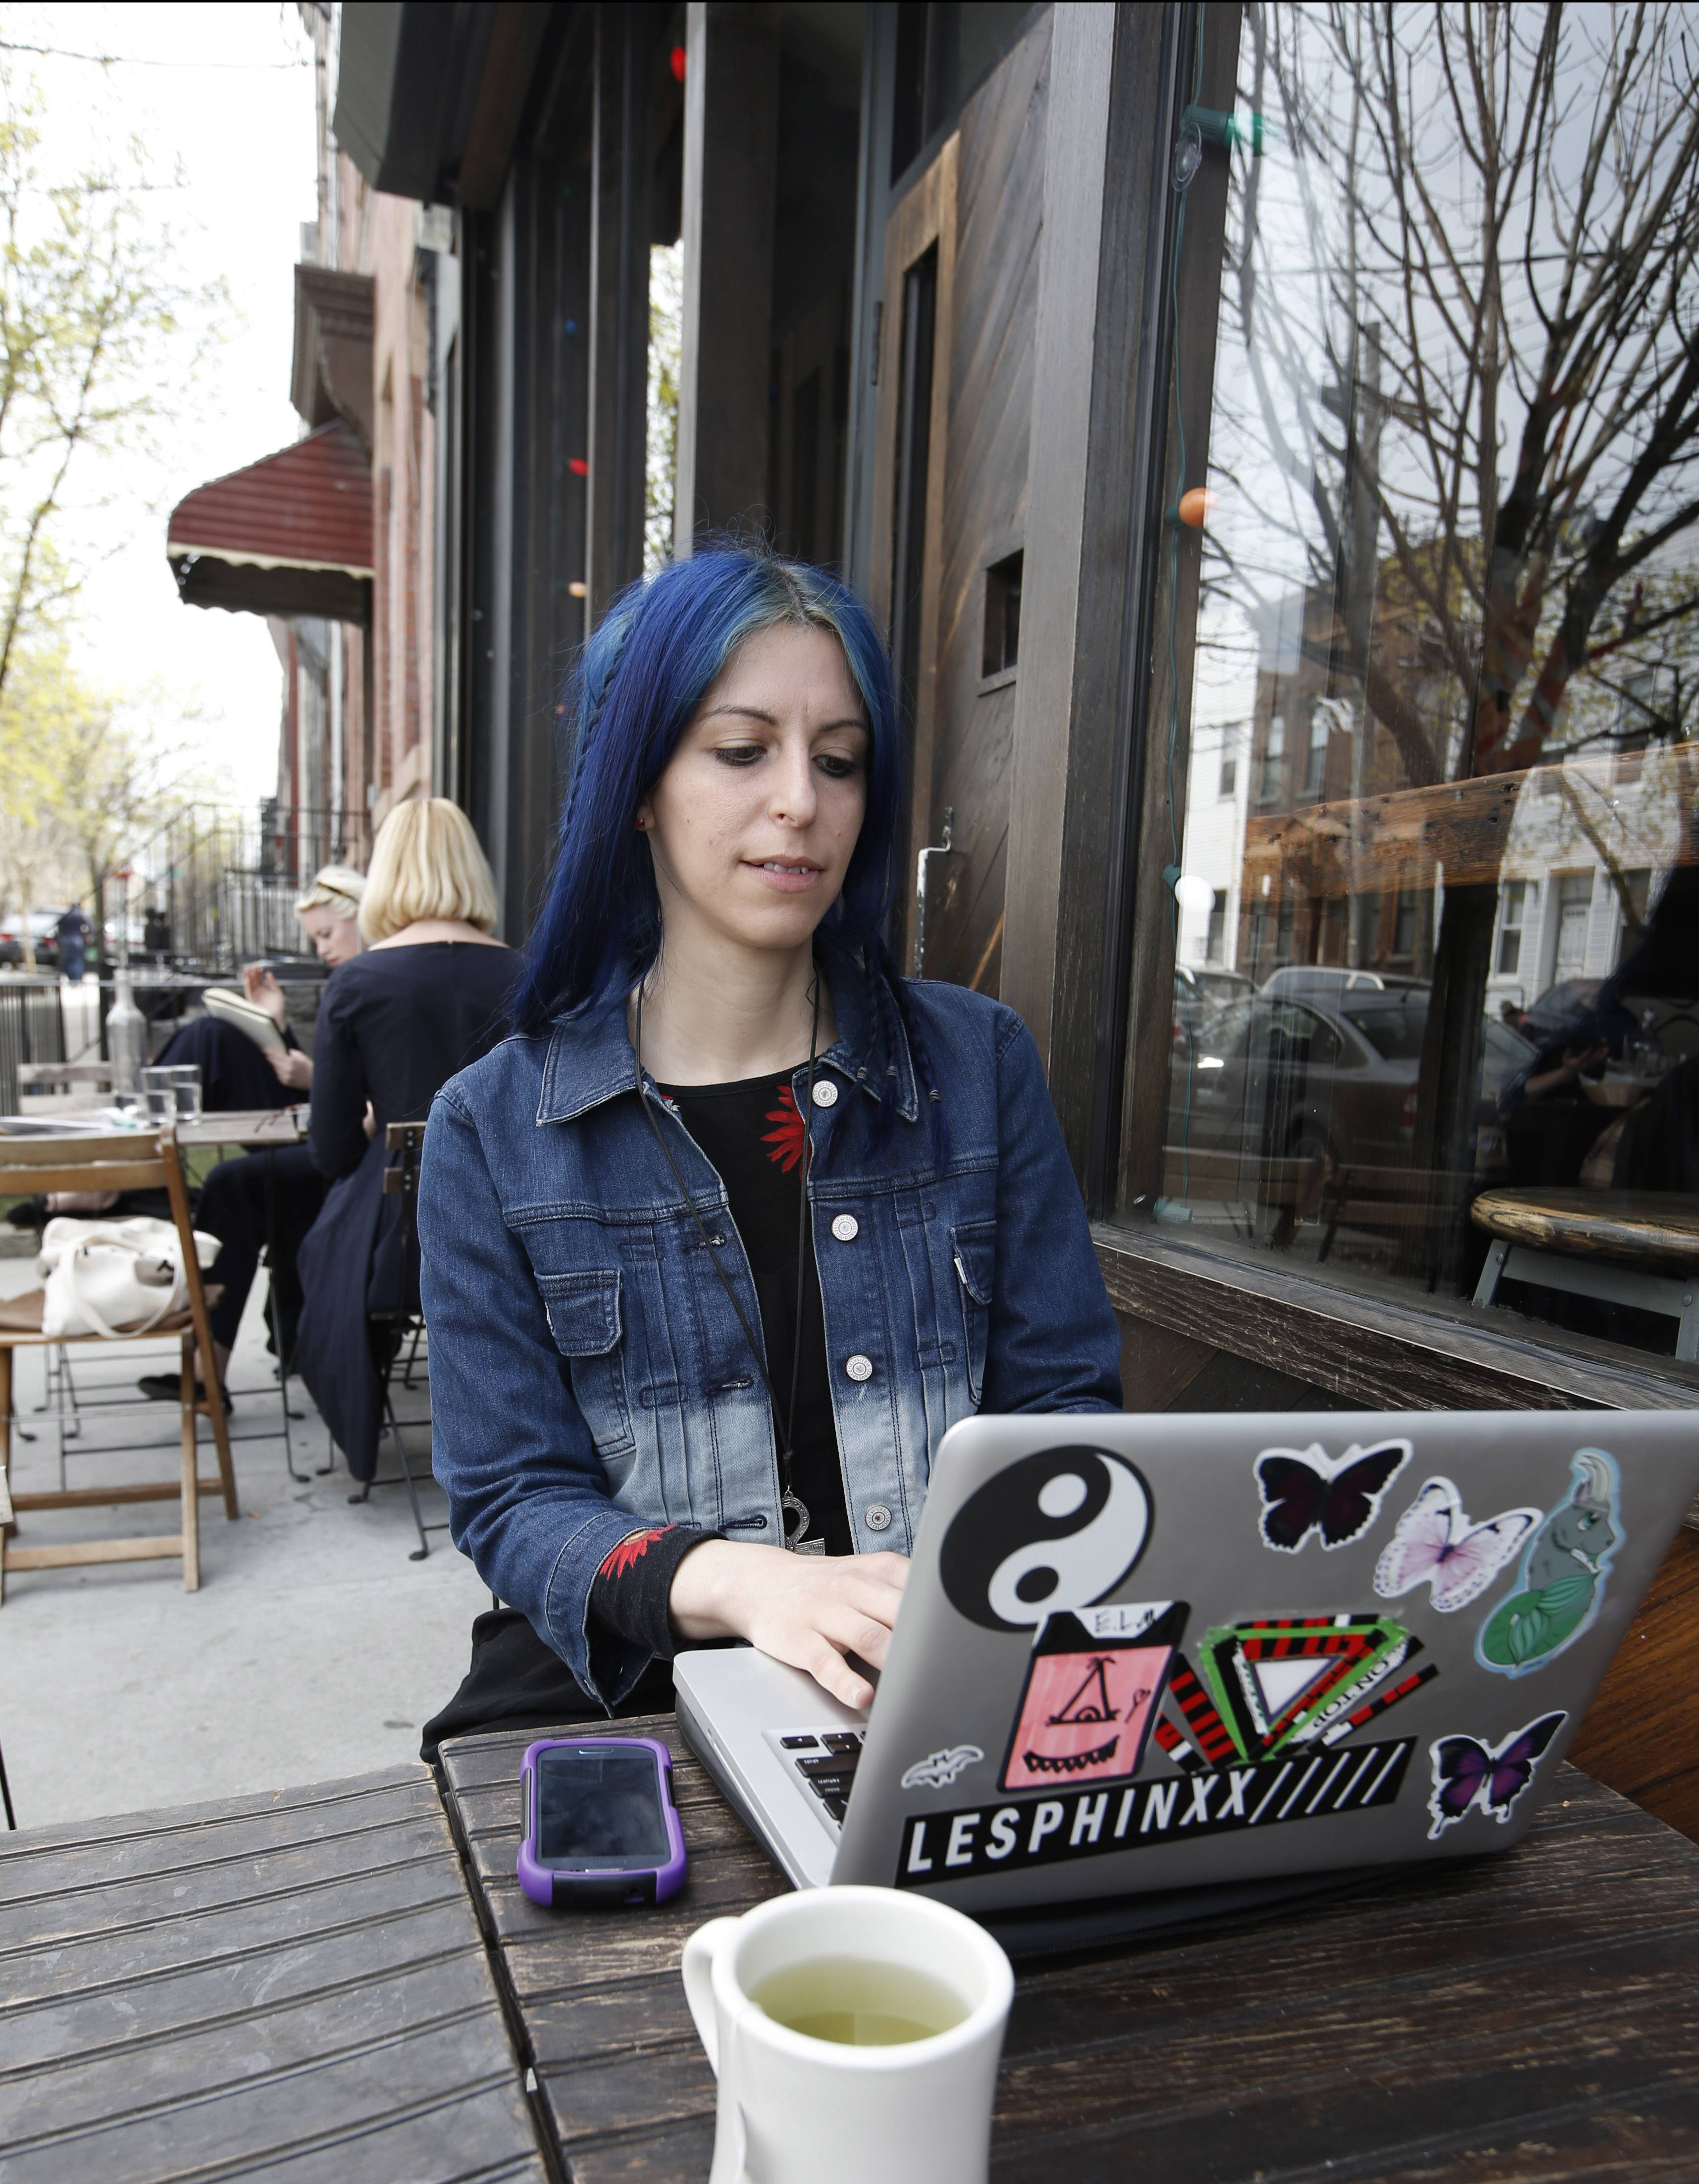 Doorways, a goth music performer and producer, works on her laptop at a cafe on a spring day in Brooklyn's cutting-edge Bushwick neighborhood. The area draws creative young people from all over the world.